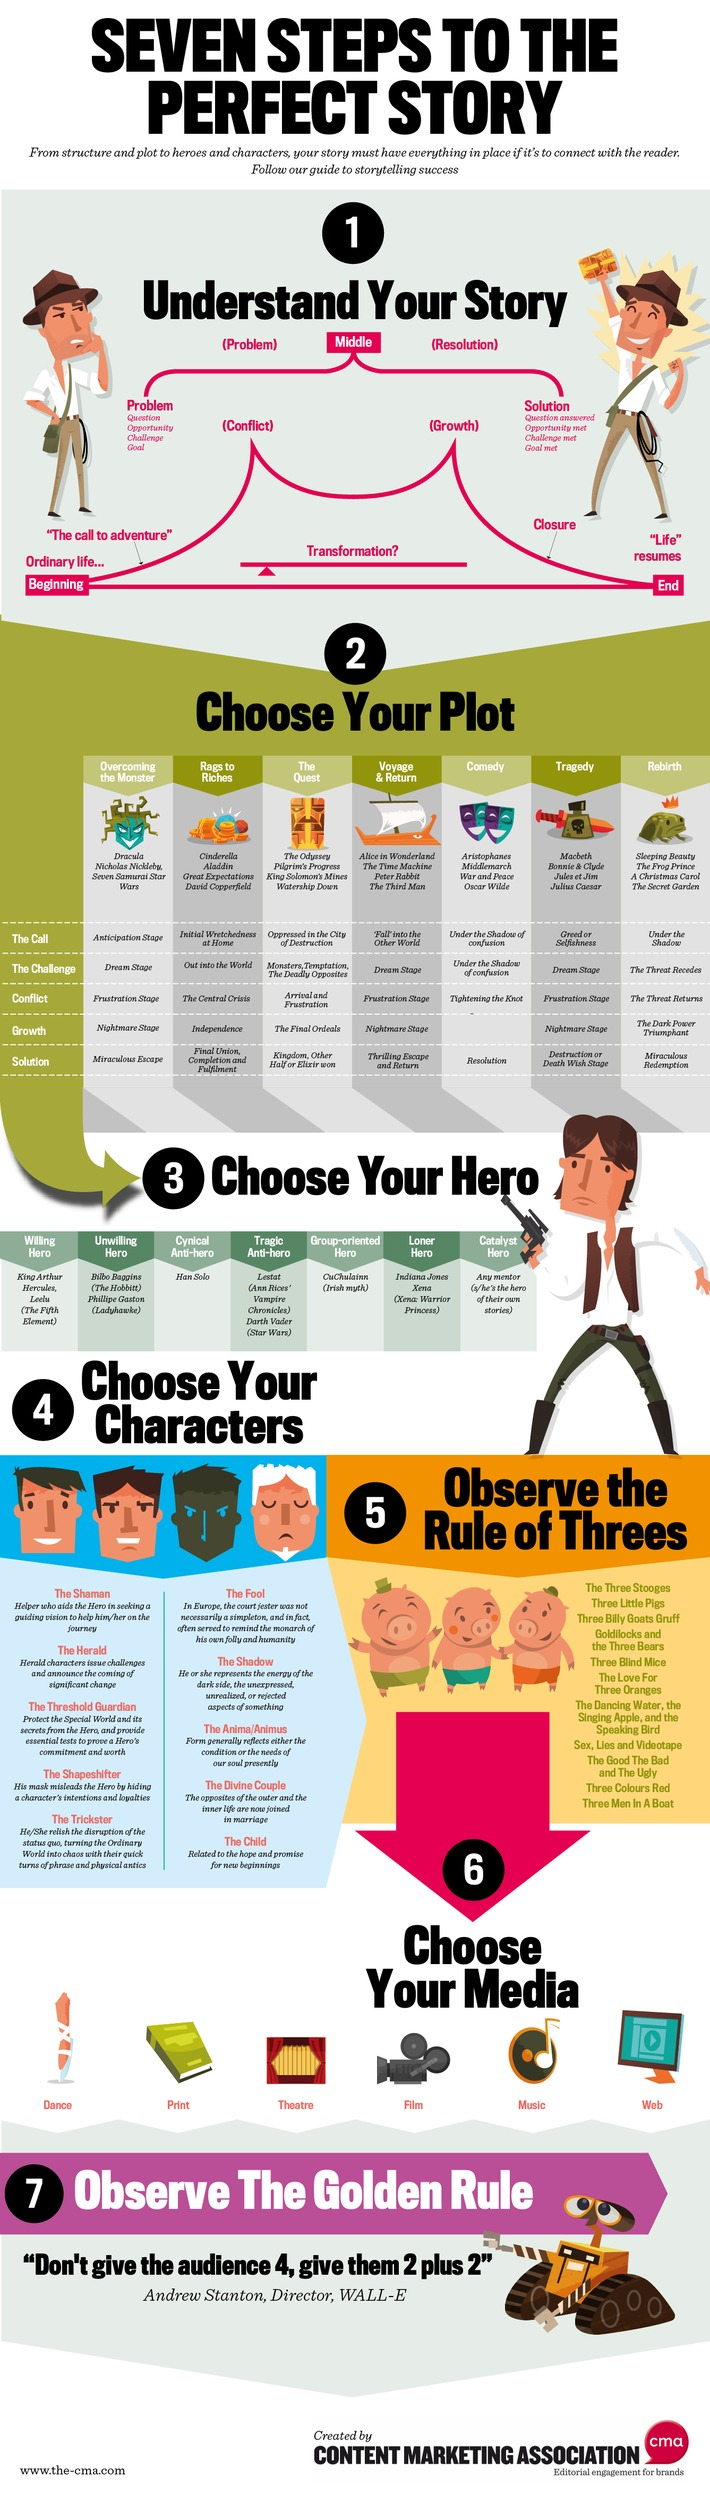 SEVEN STEPS TO THE PERFECT STORY [Infographic] | Machinimania | Scoop.it